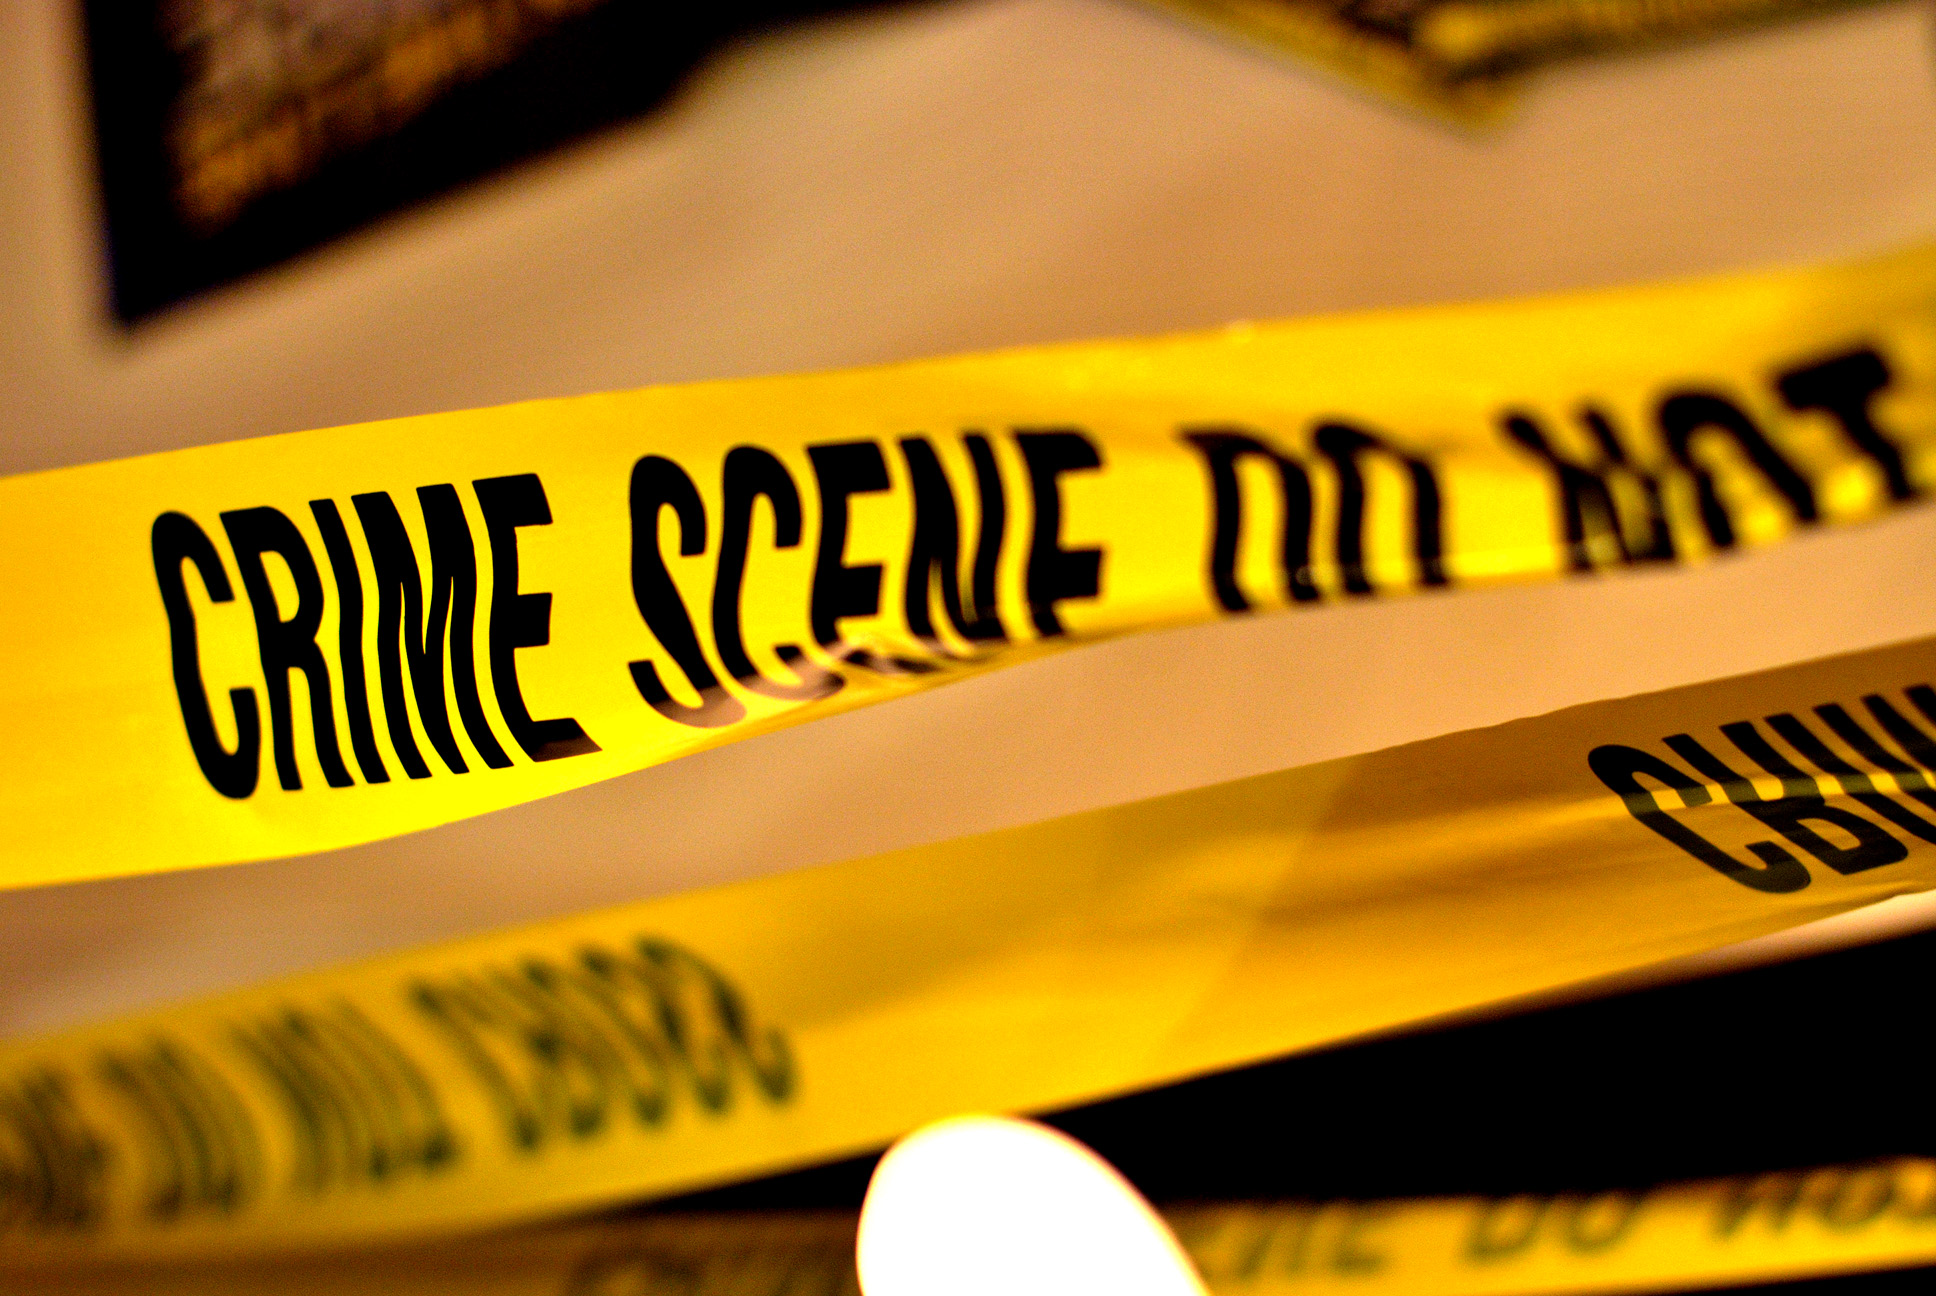 Homicide Statistics Point to Poor Conditions In Many American Cities